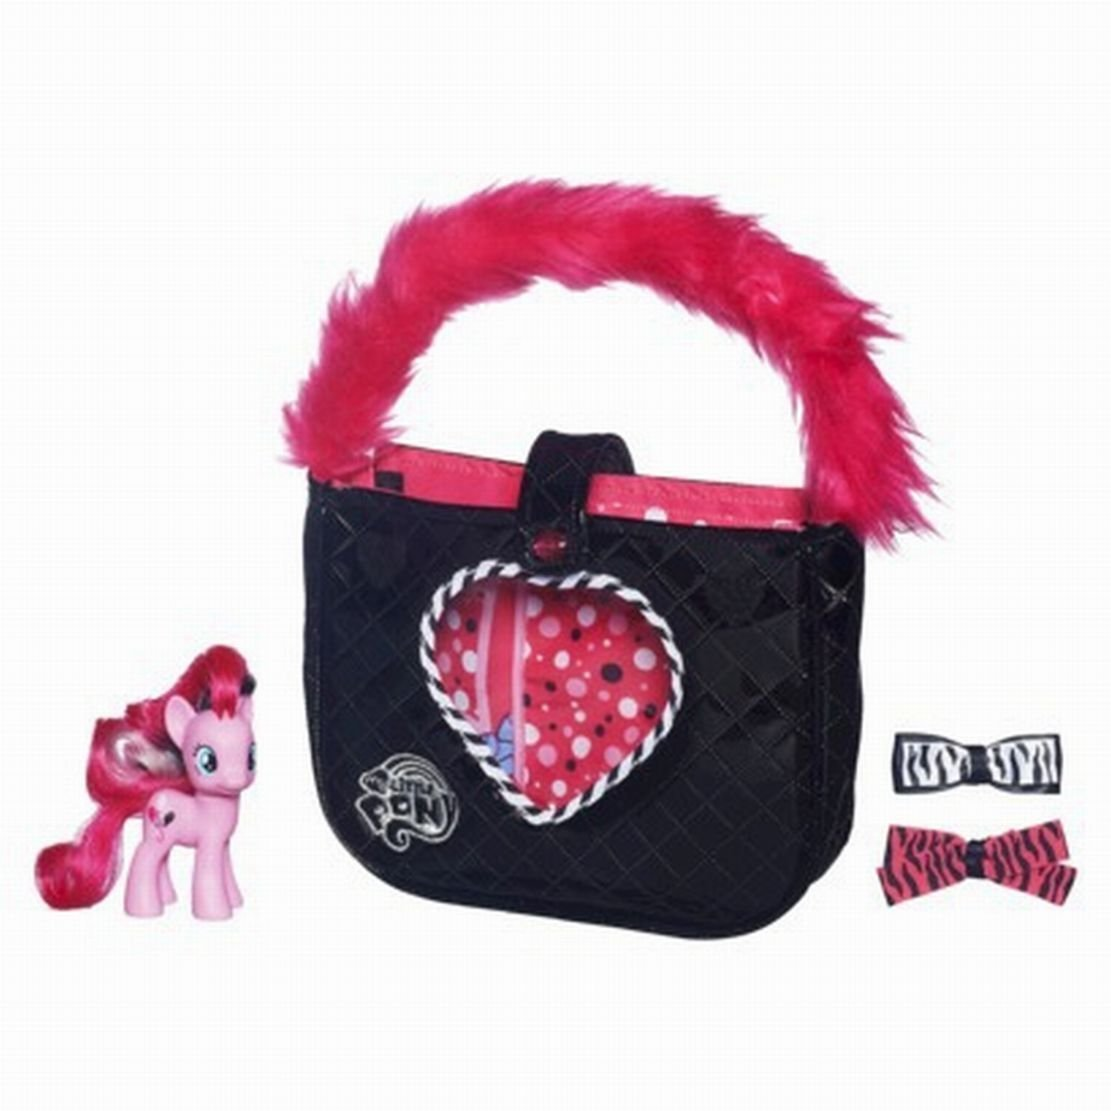 Exclusive My Little Pony Pinkie Pies Boutique Fabulous Purse Set [Toy] [Toy] by, My Little Pony Pinkie Pie's Boutique Pink & Fabulous Purse